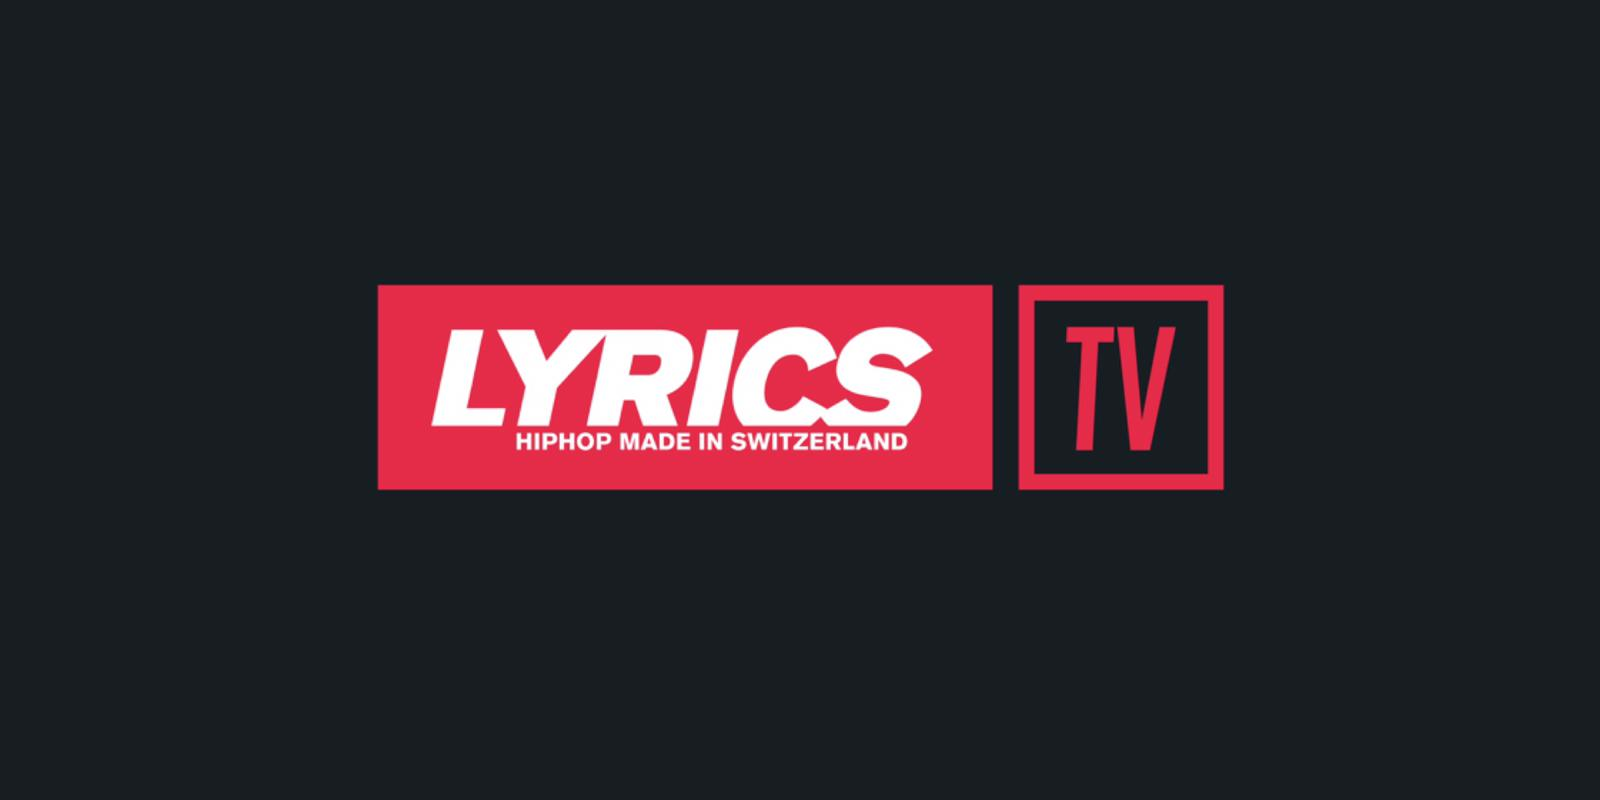 LYRICS TV - We're hiring!